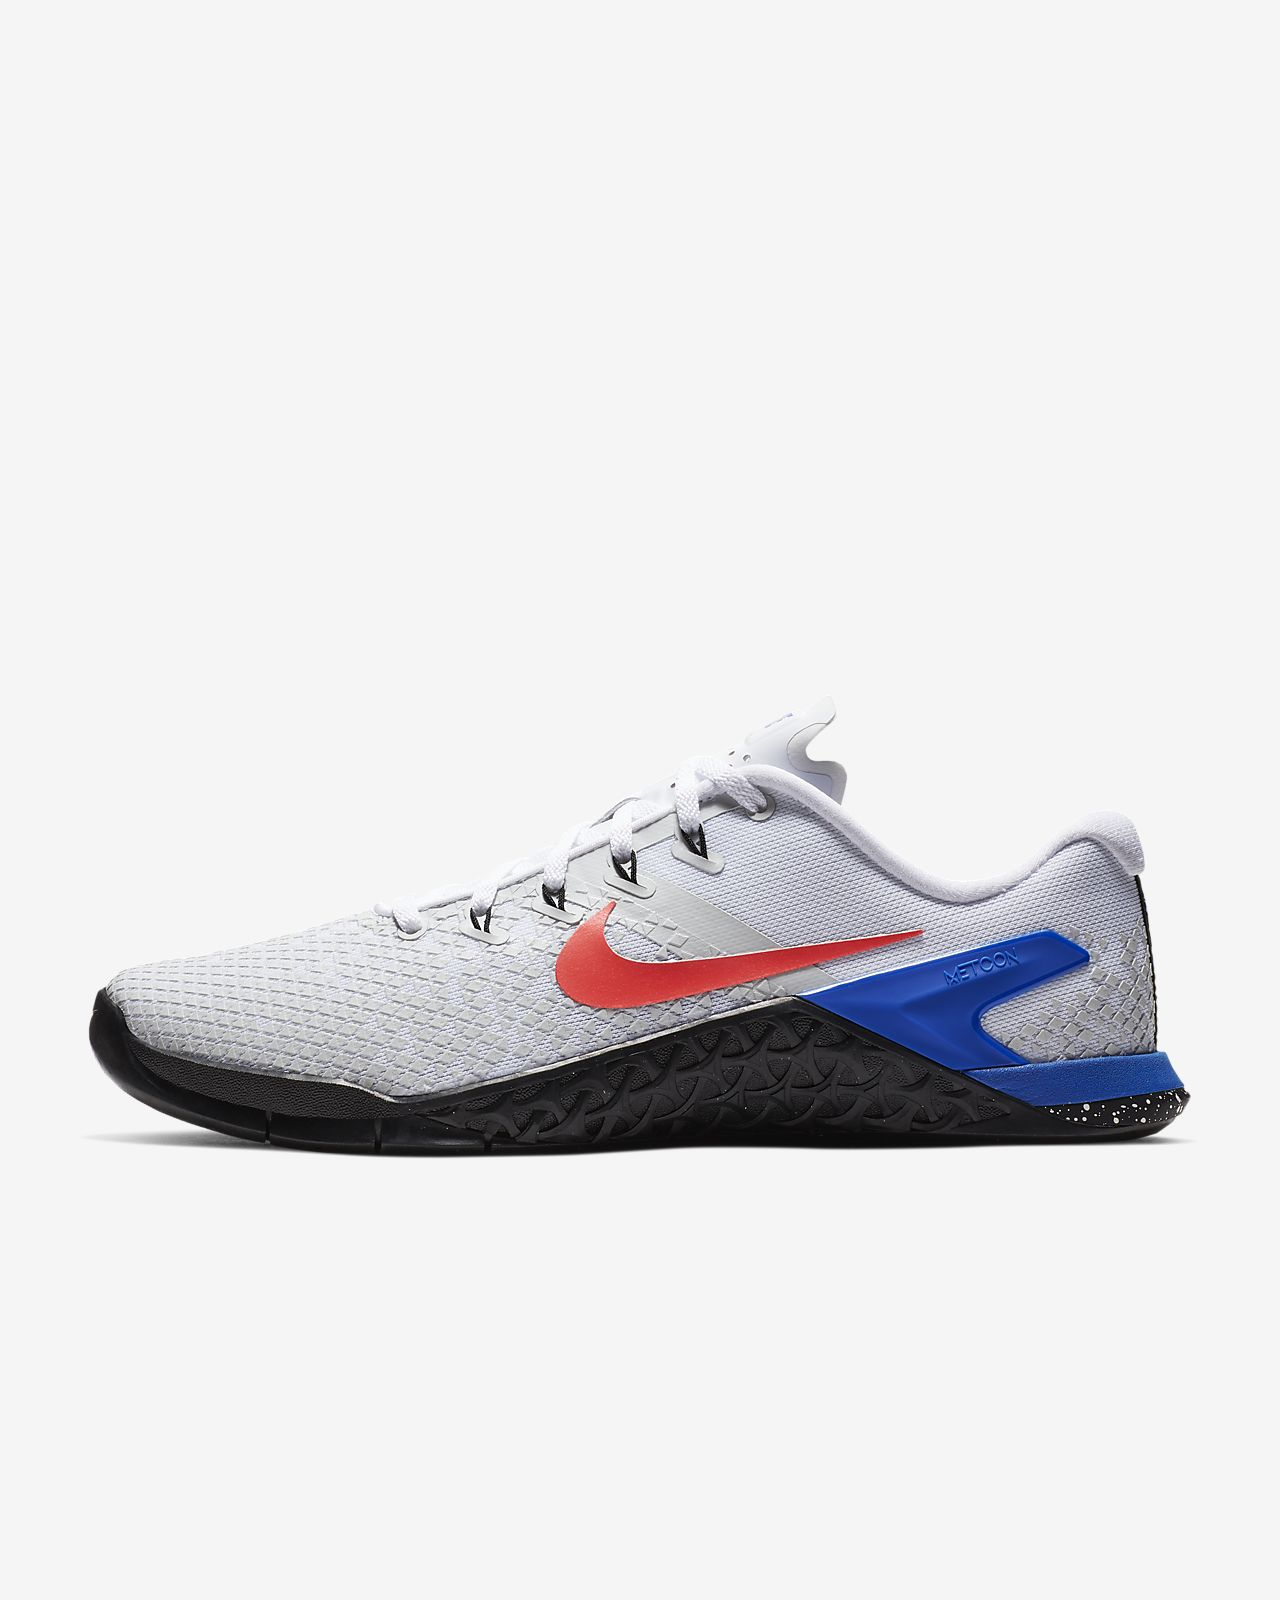 41ccb2e372b6a Nike Metcon 4 XD Men s Training Shoe. Nike.com